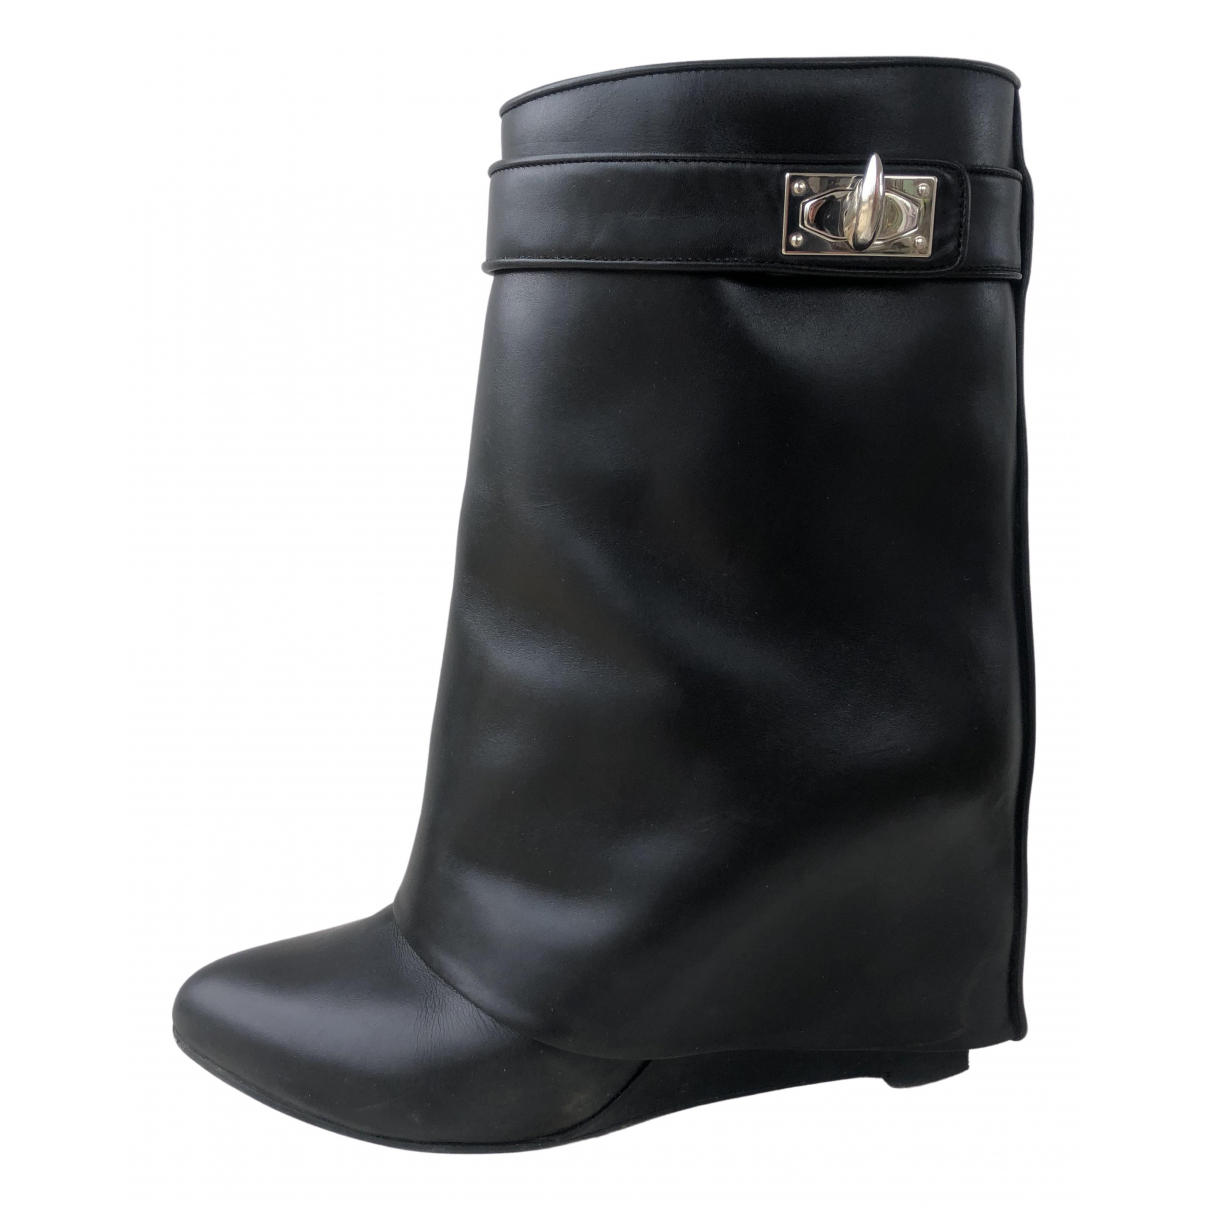 Givenchy Shark Black Leather Ankle boots for Women 39.5 EU